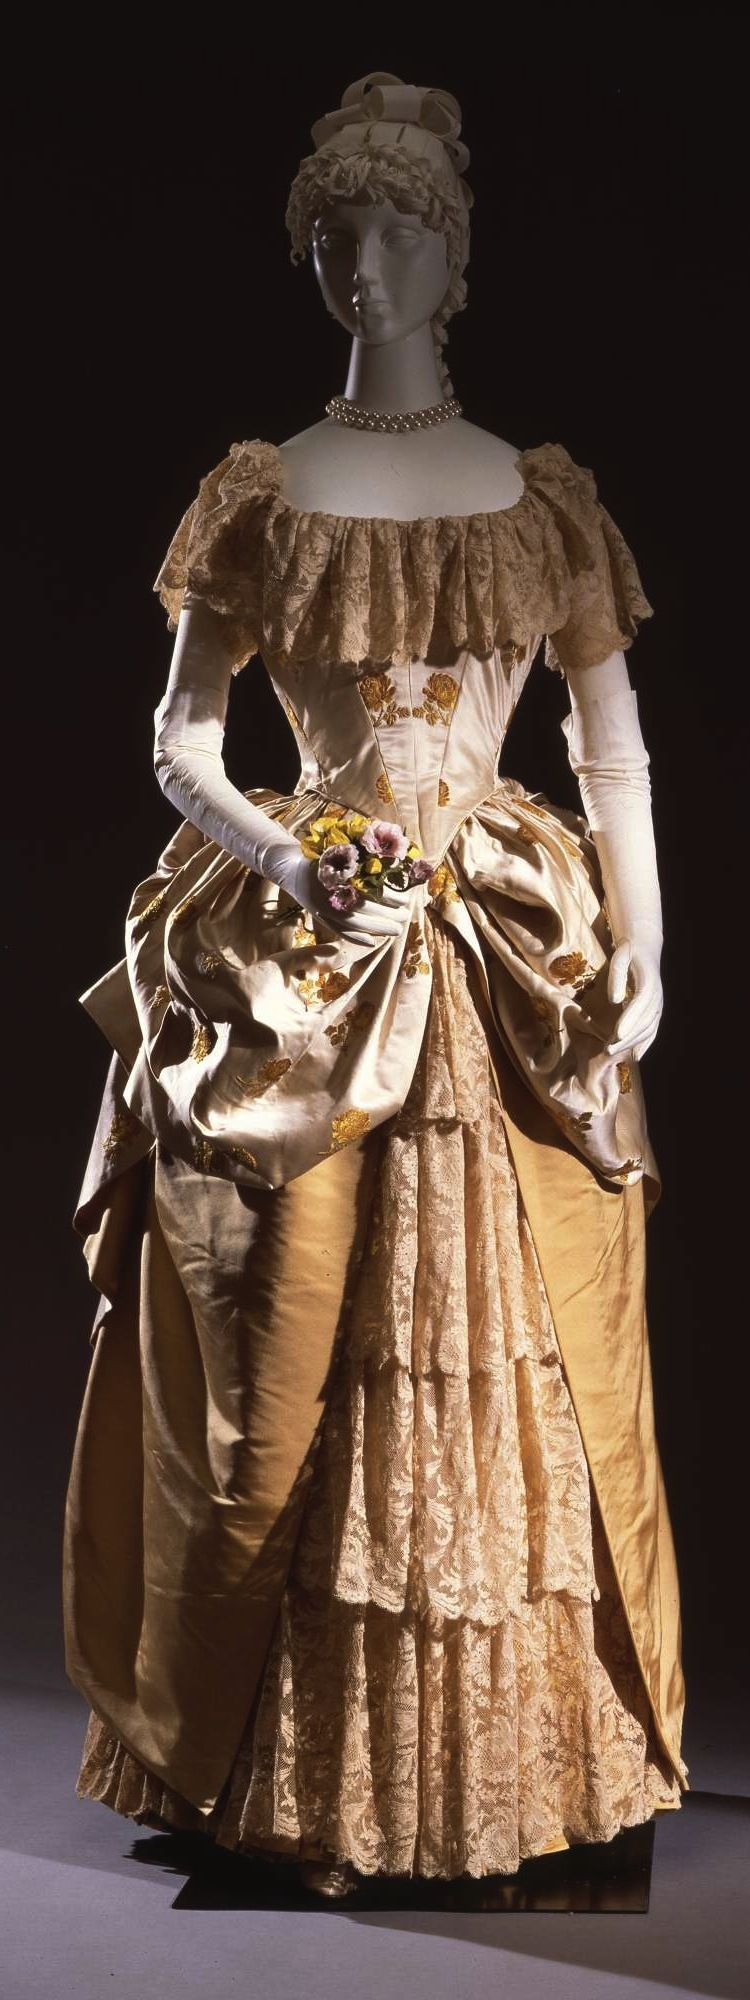 Evening dress french manufacture c at the pitti palace